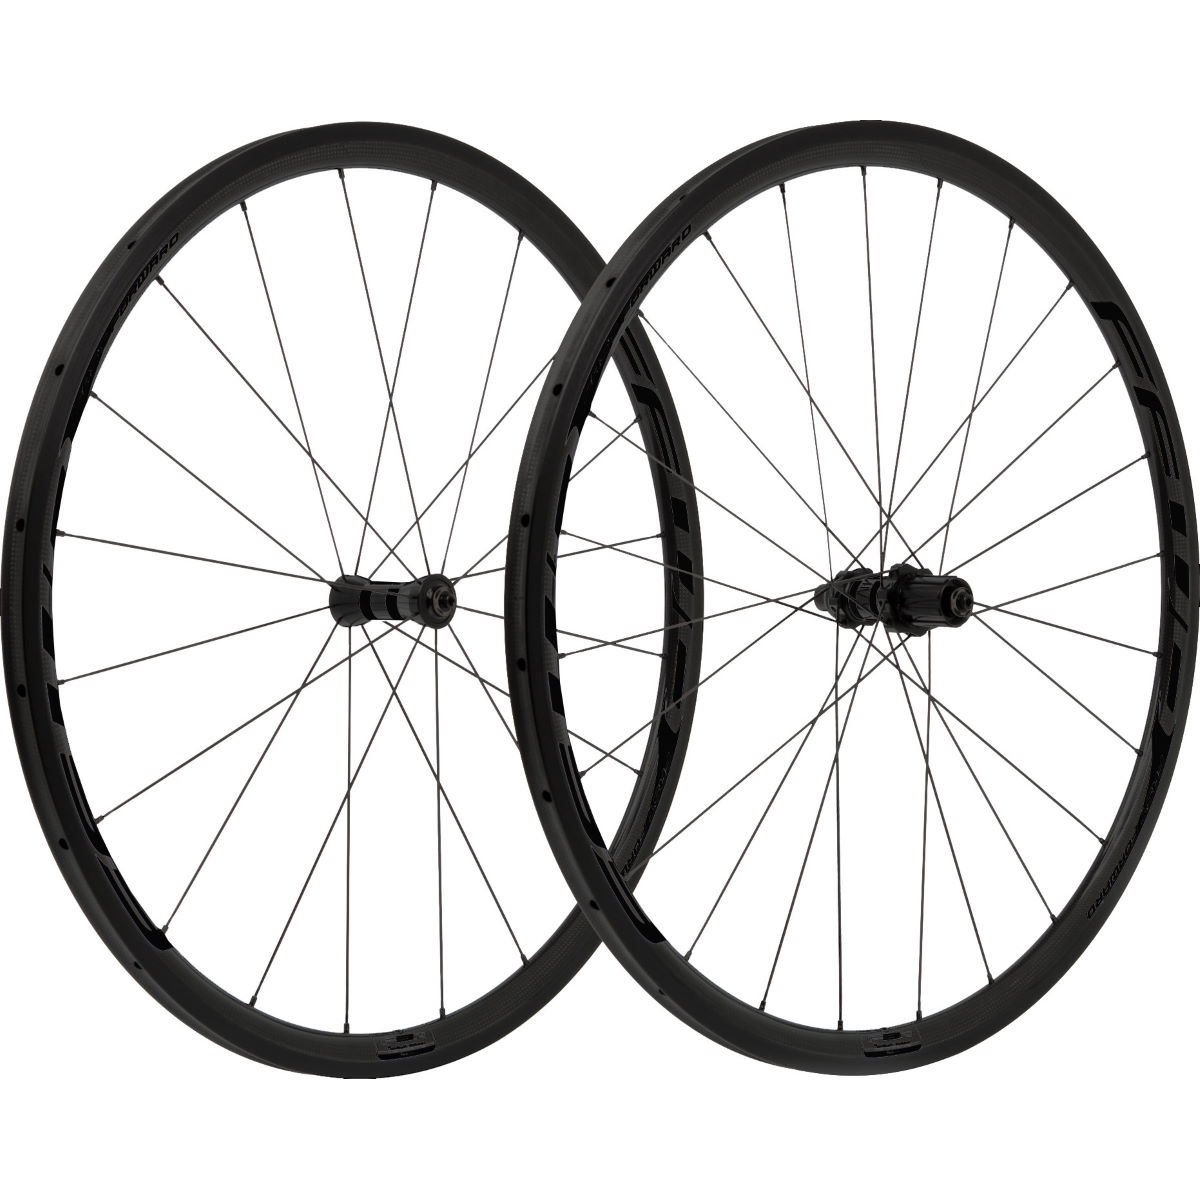 Fast Forward Carbon F4R FCC TLR 45mm SP Wheelset - Ruedas de competición